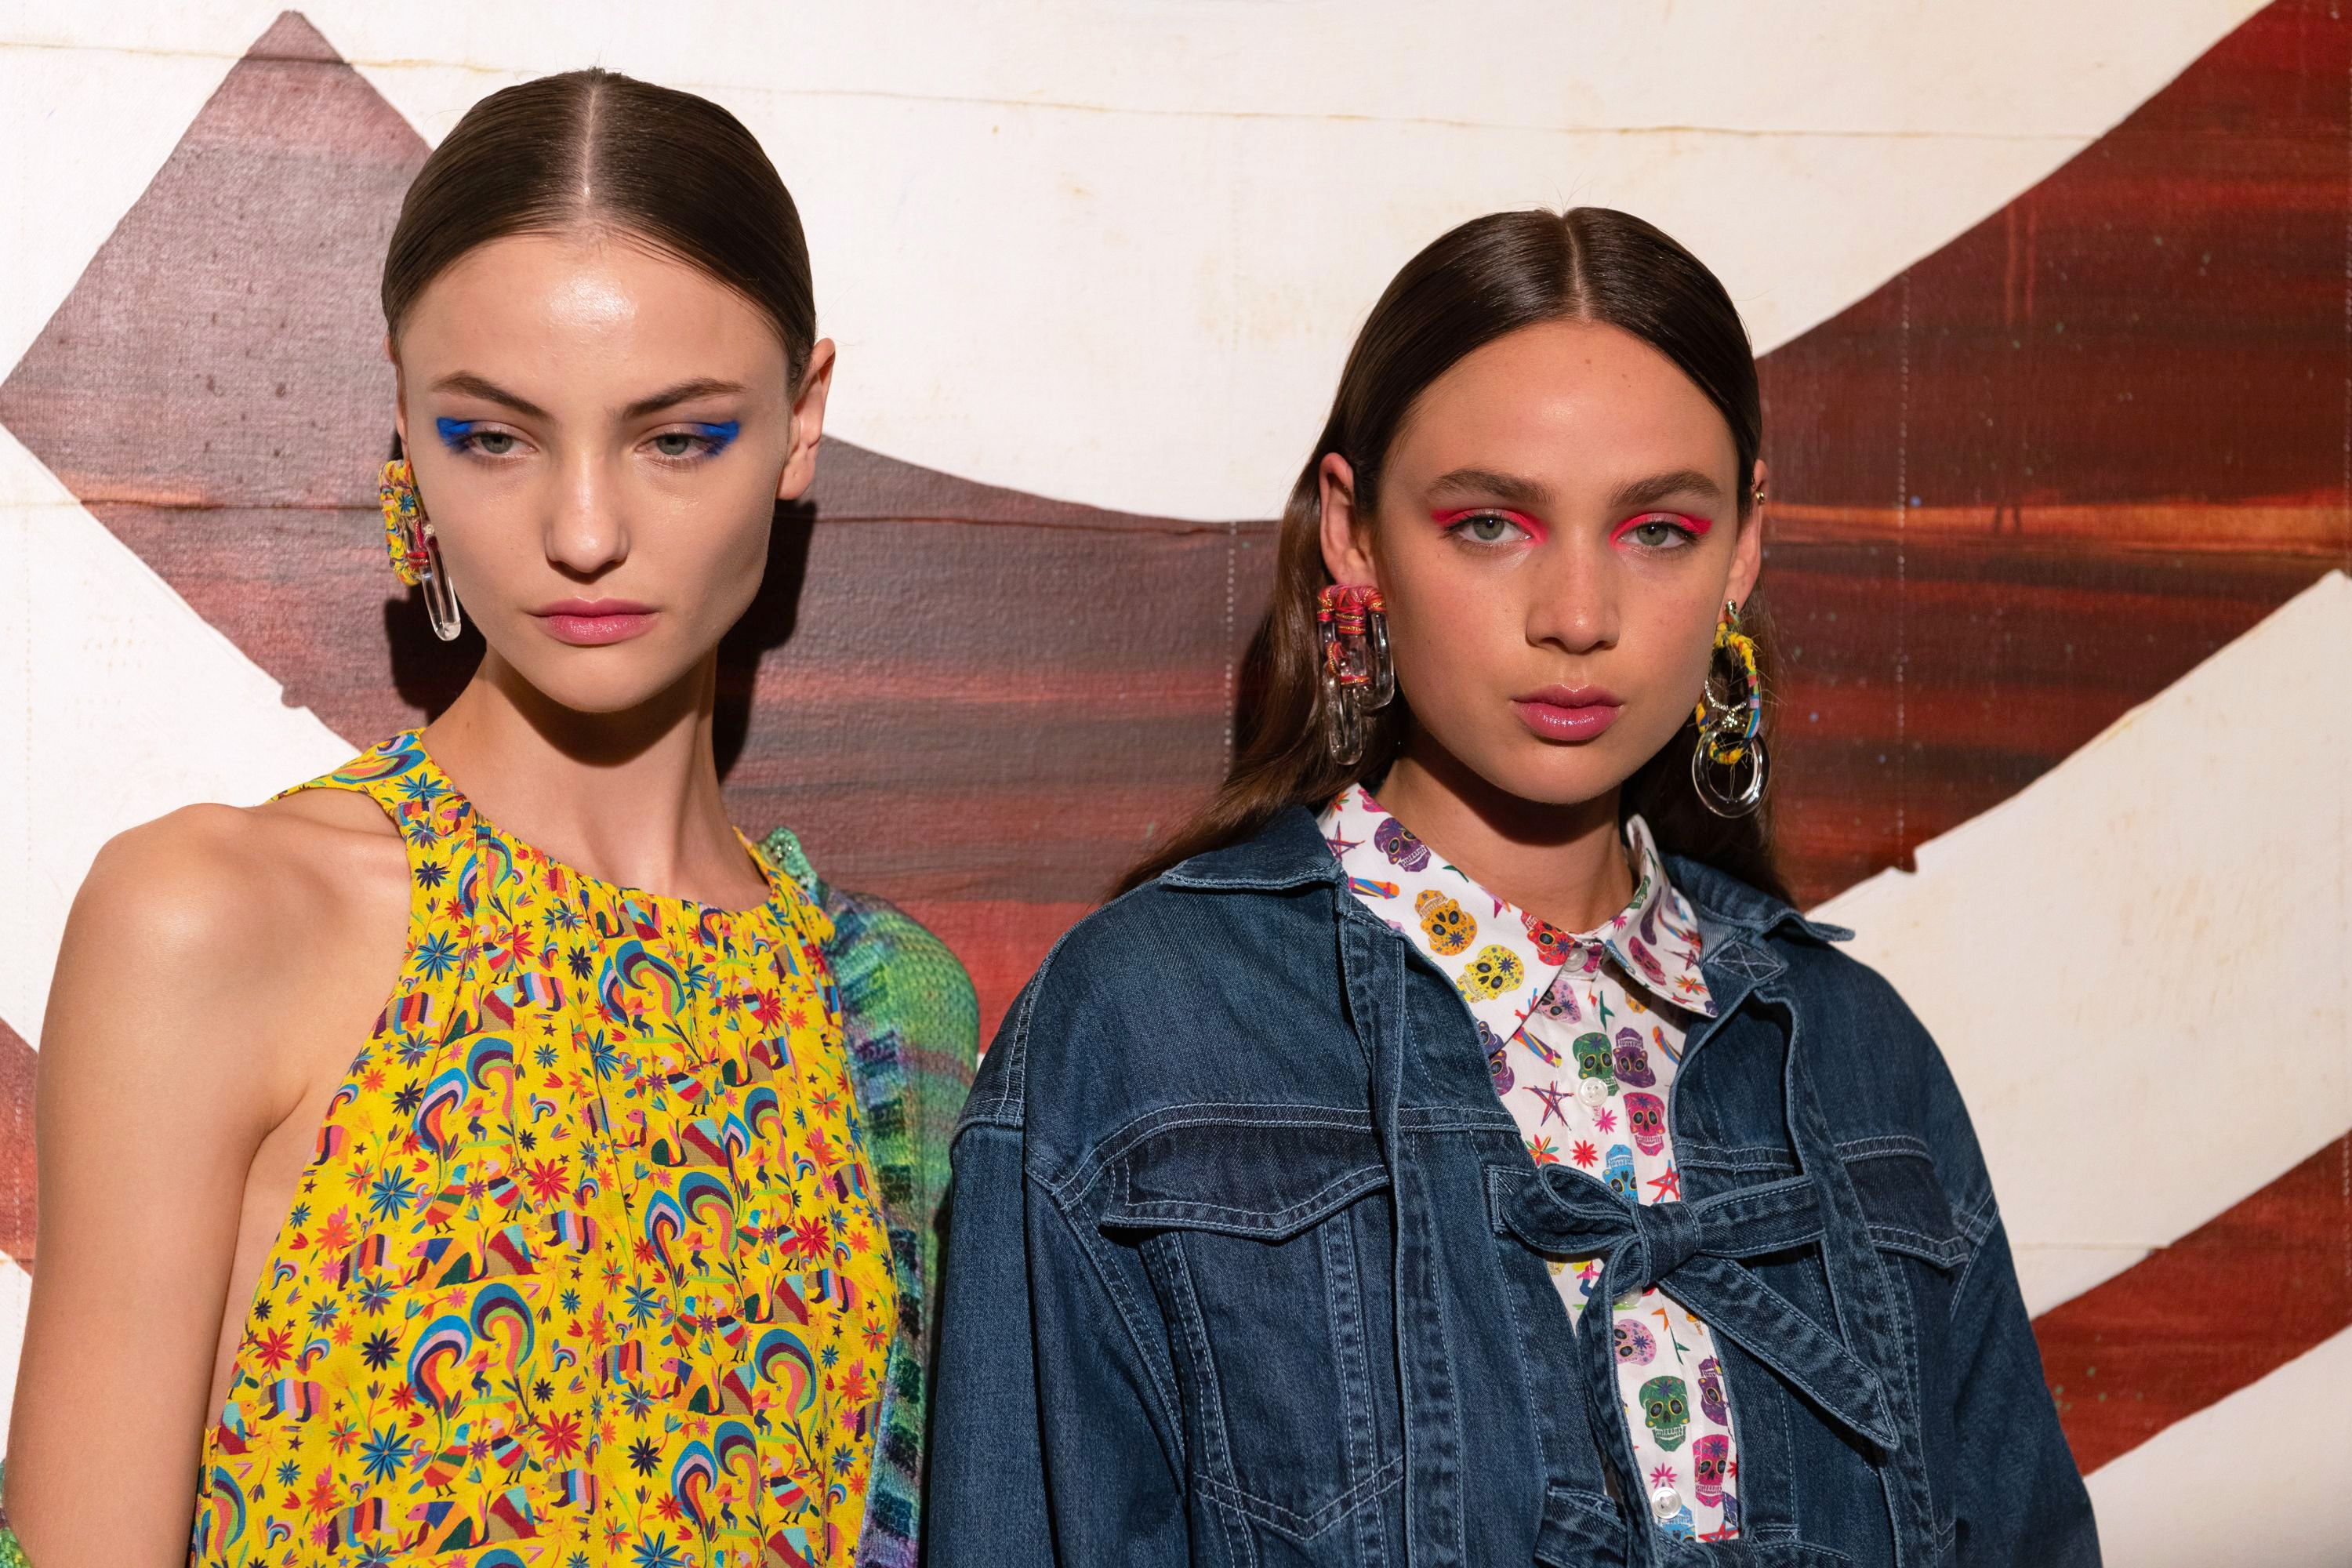 The Best Makeup Looks From the Spring 2020 Runways